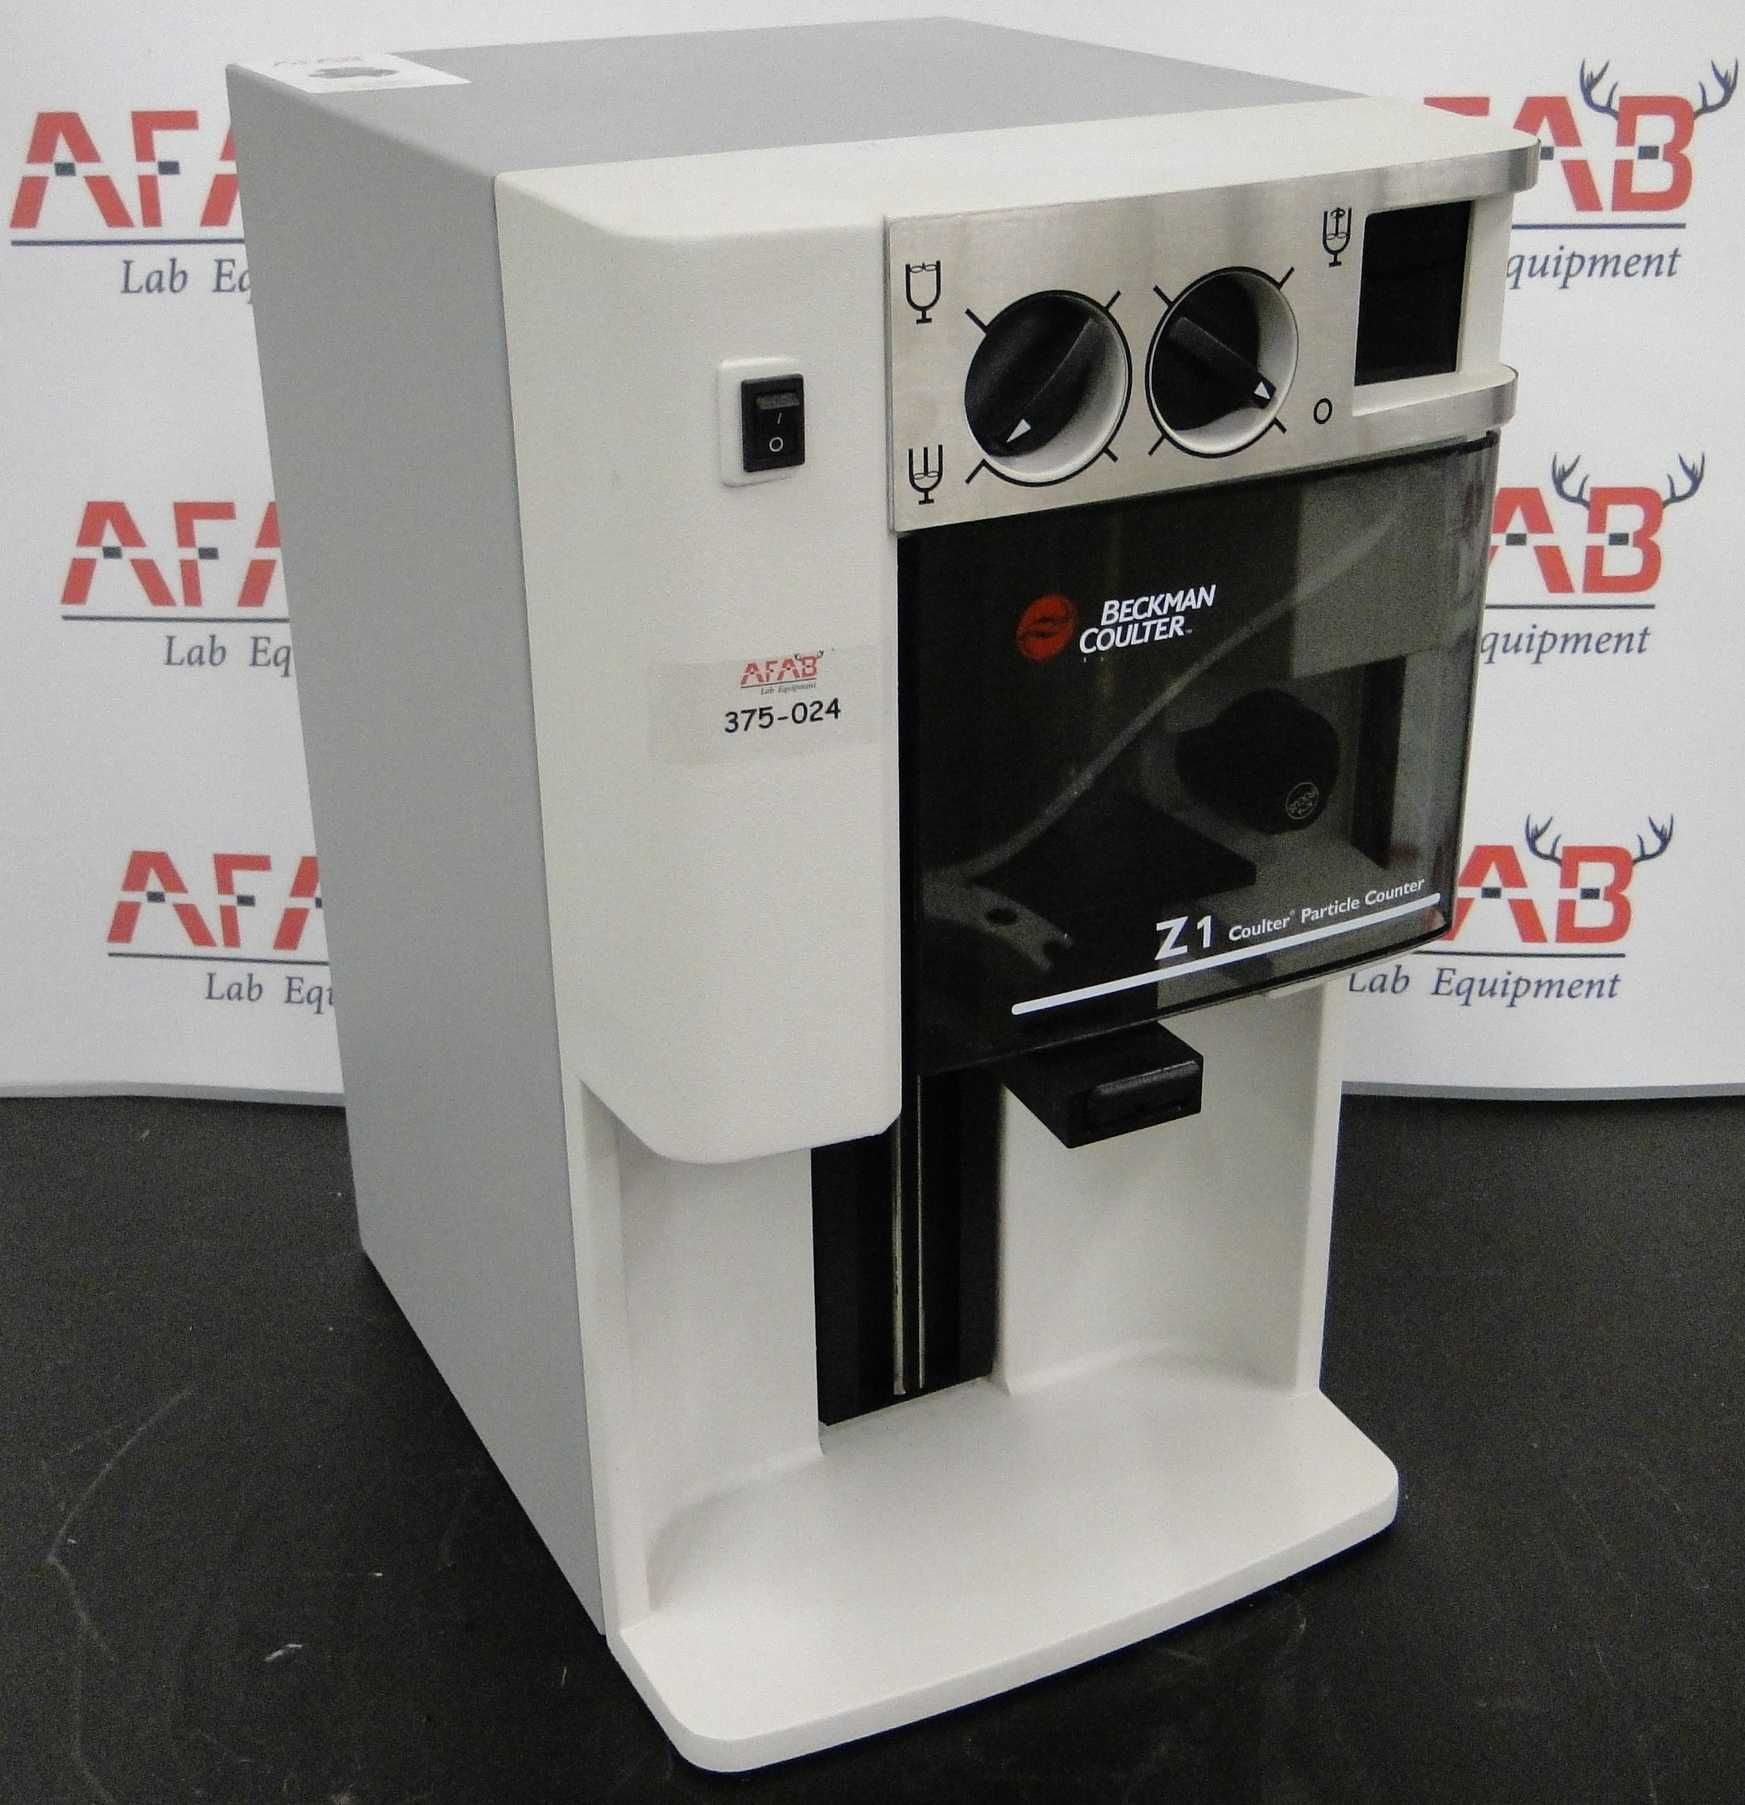 Beckman Coulter Particle Counter Z1-D